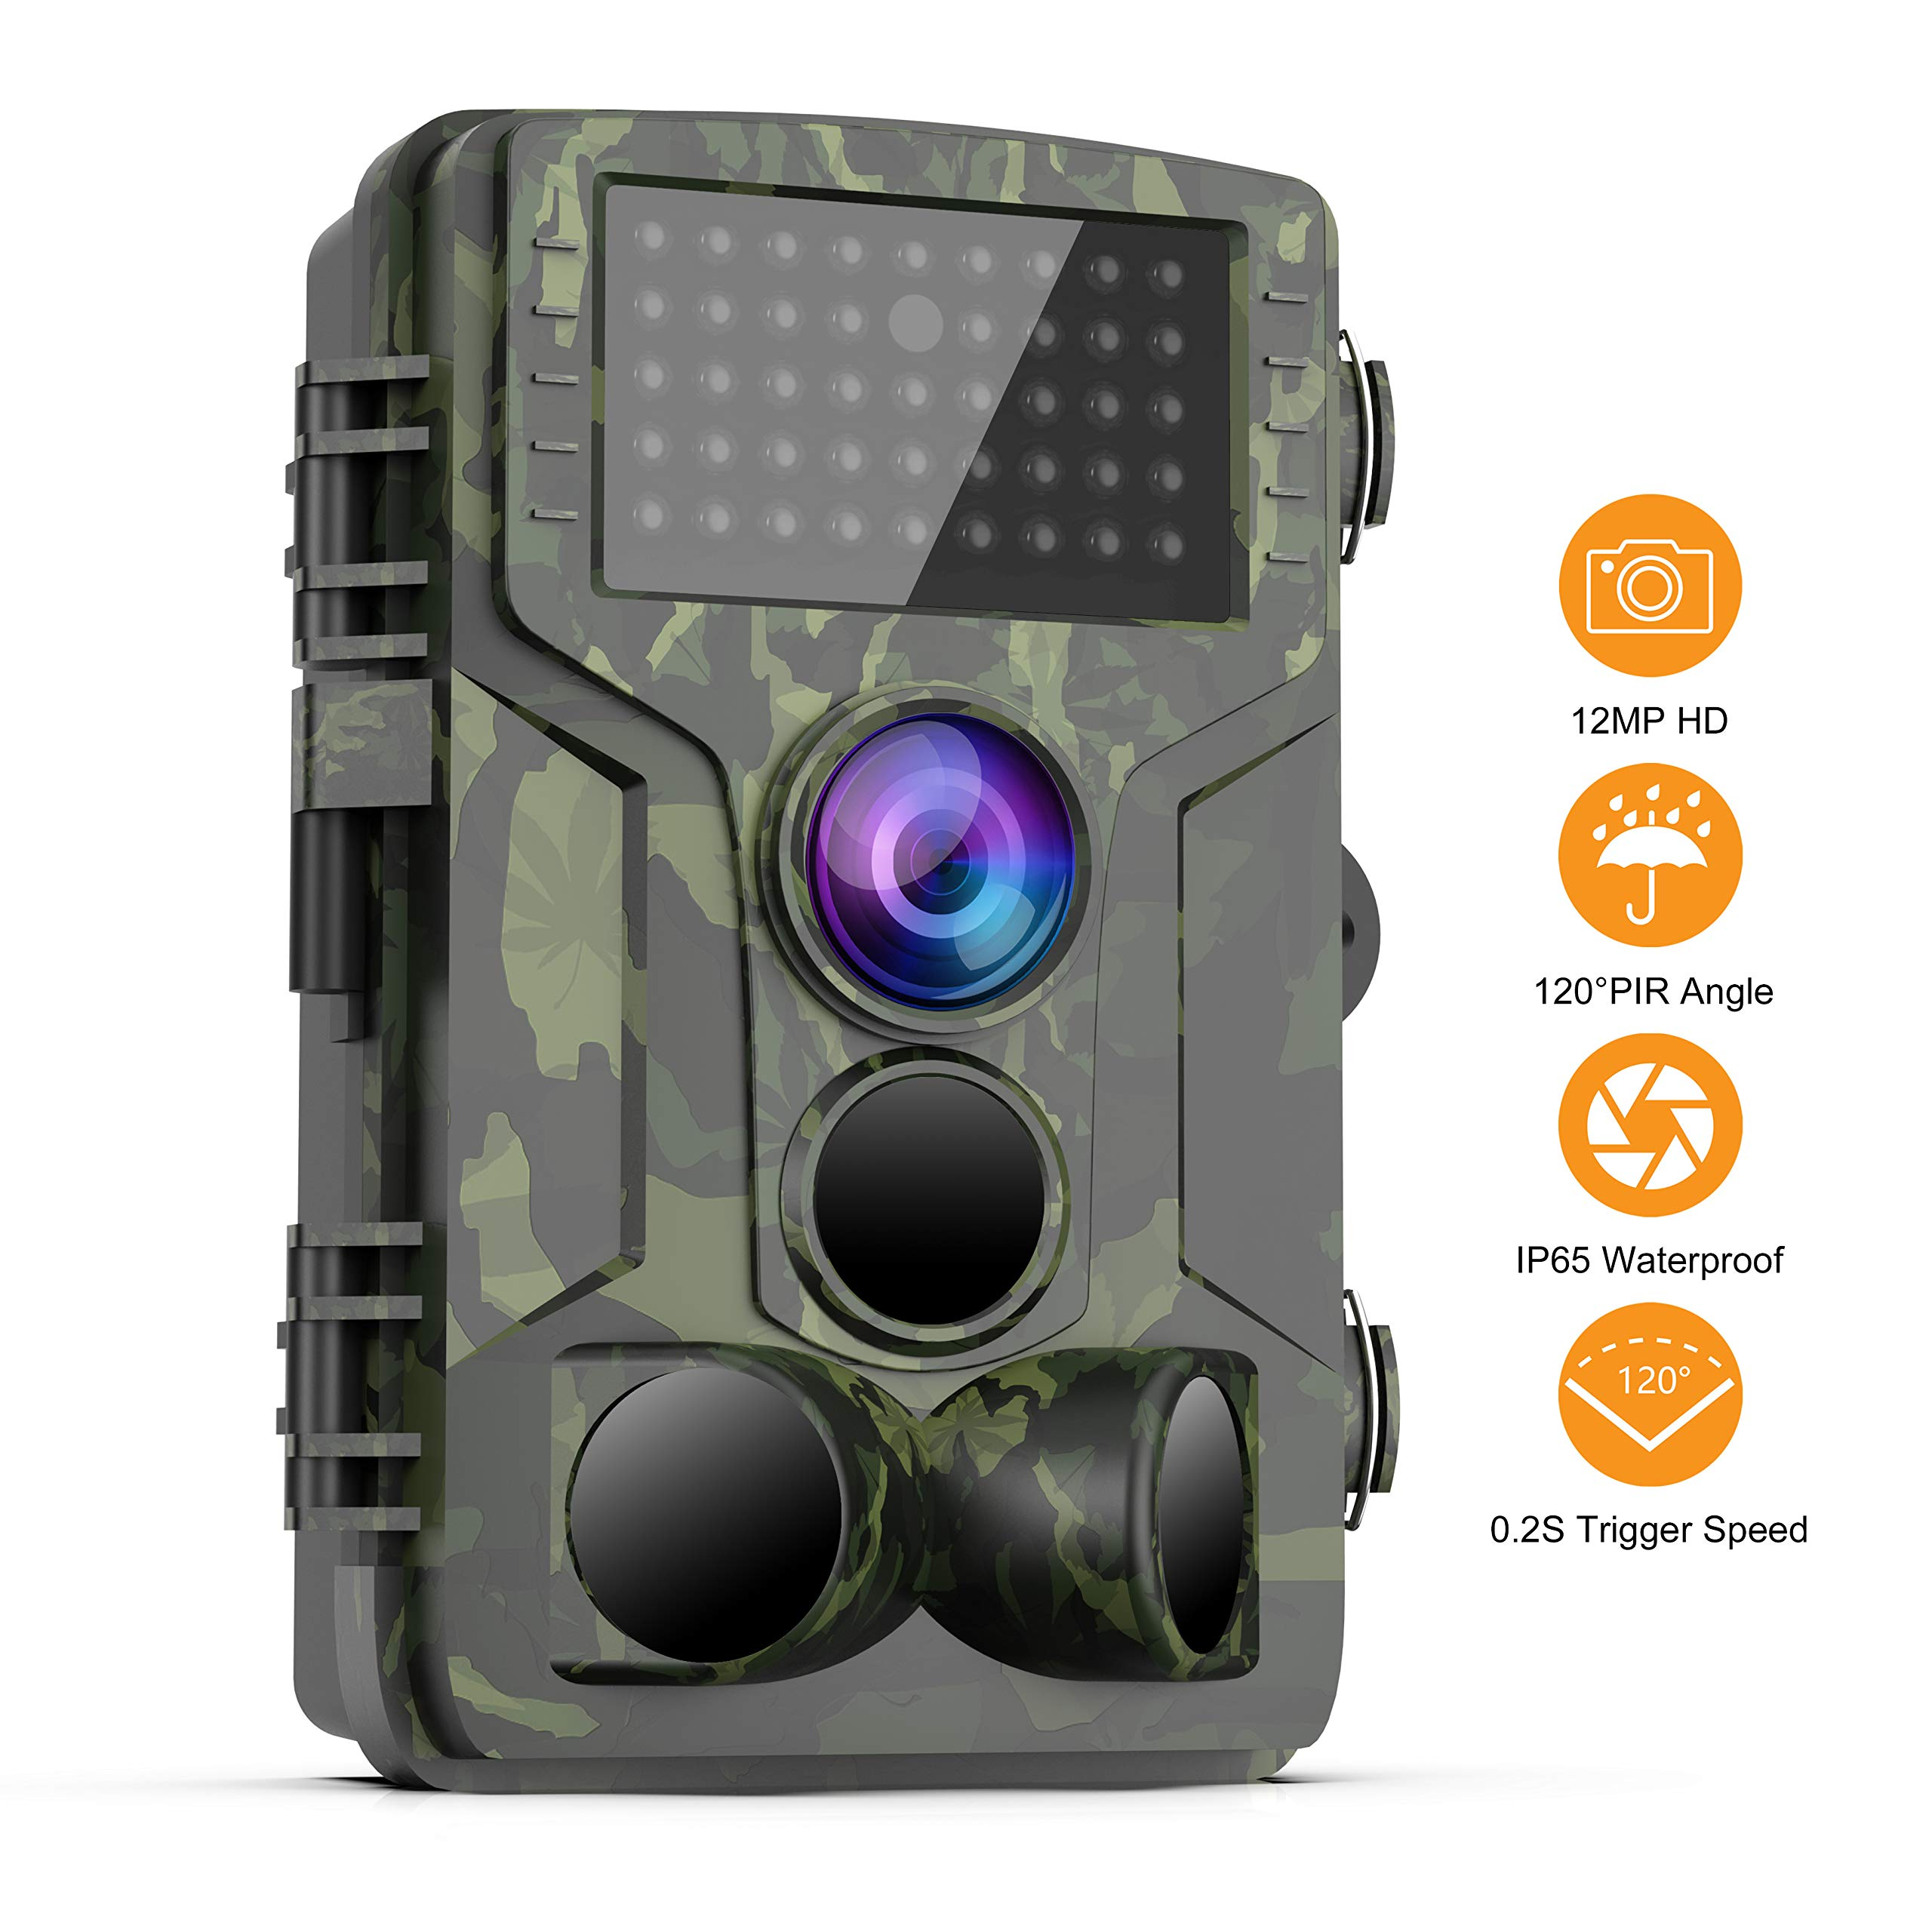 FHDCAM Trail Camera - 1080P Full HD Wildlife Scouting Hunting Camera with 0.3s Trigger Speed Motion Activated Night Vision, 120° Wide Angle Lens 3 PIR Sensor, Waterproof Game Camera by FHDCAM